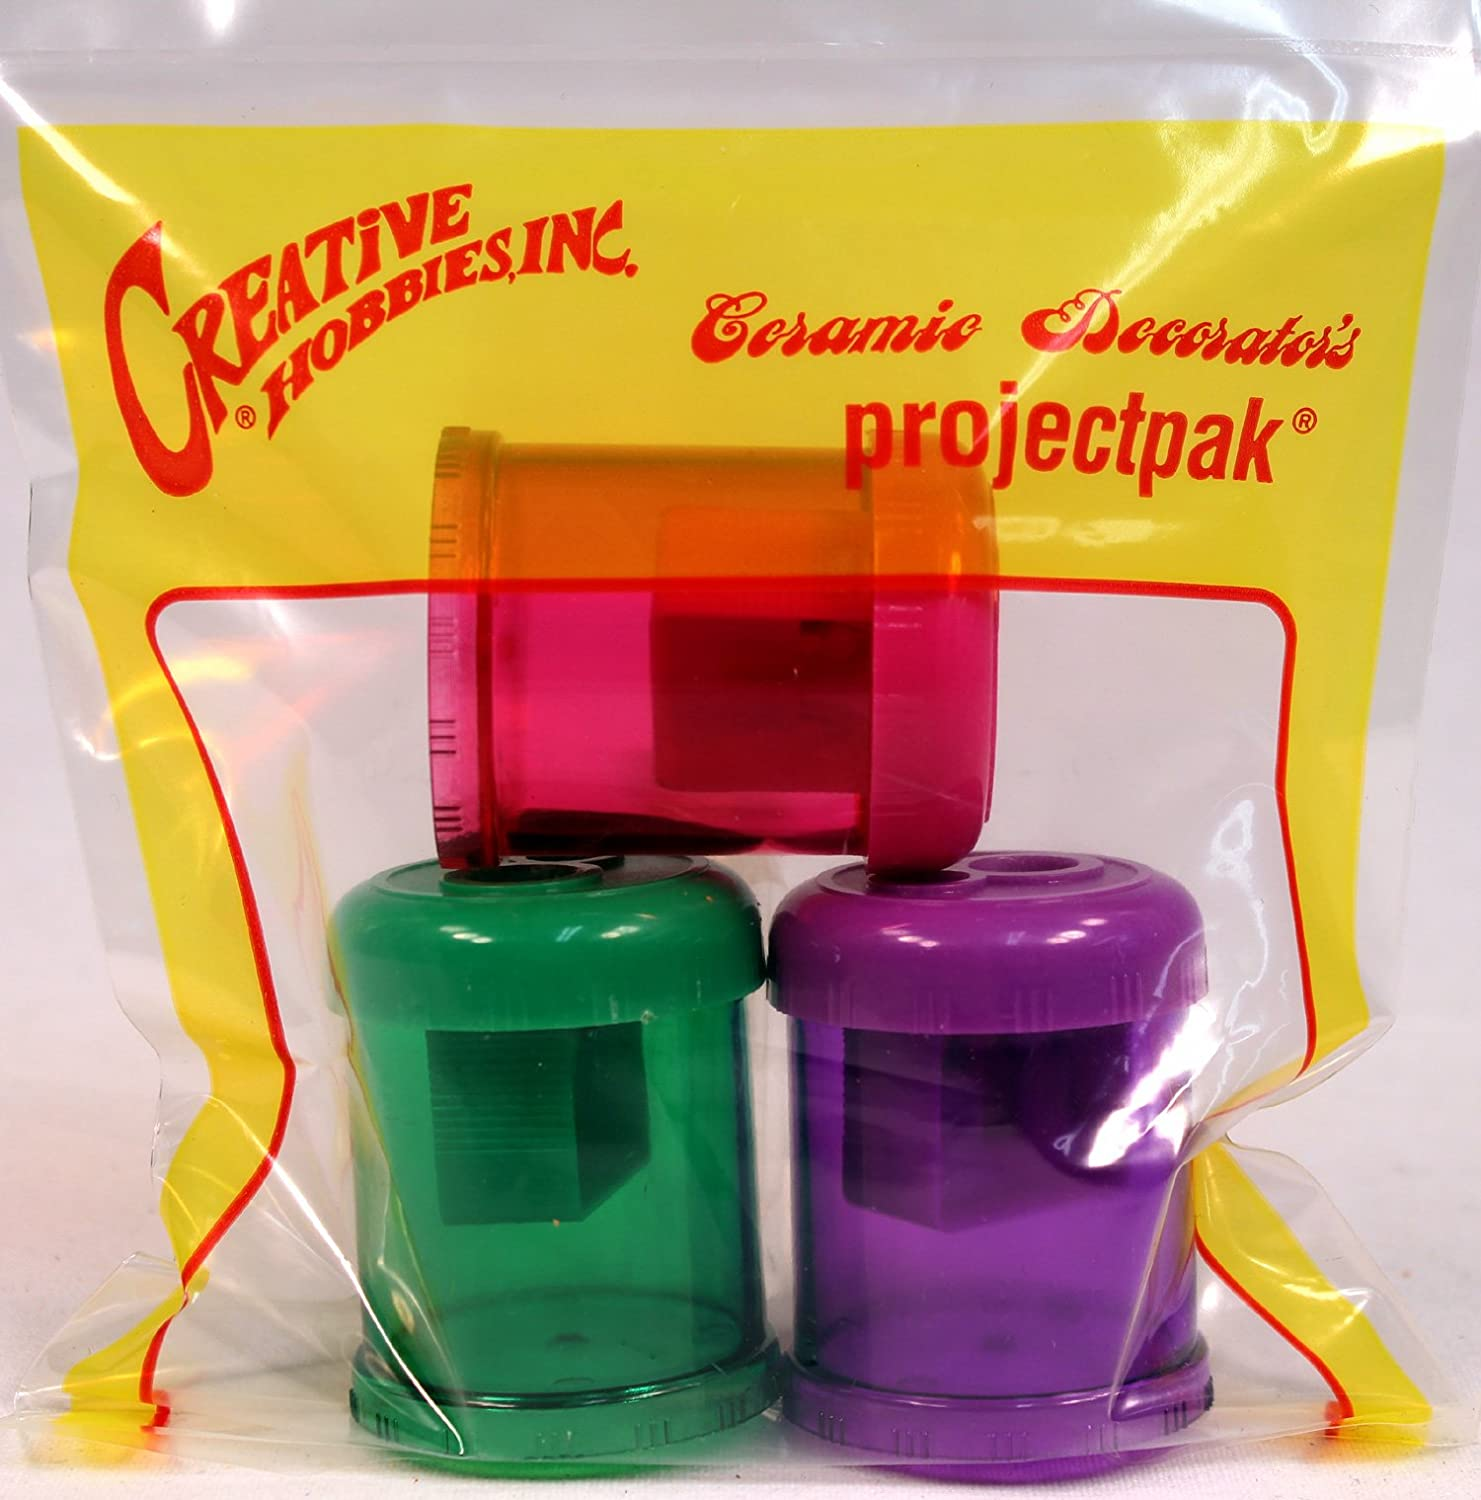 Creative Hobbies Double Hole Pencil Sharpener with Shavings Catcher Tub Case Lot of 12 Sharpeners